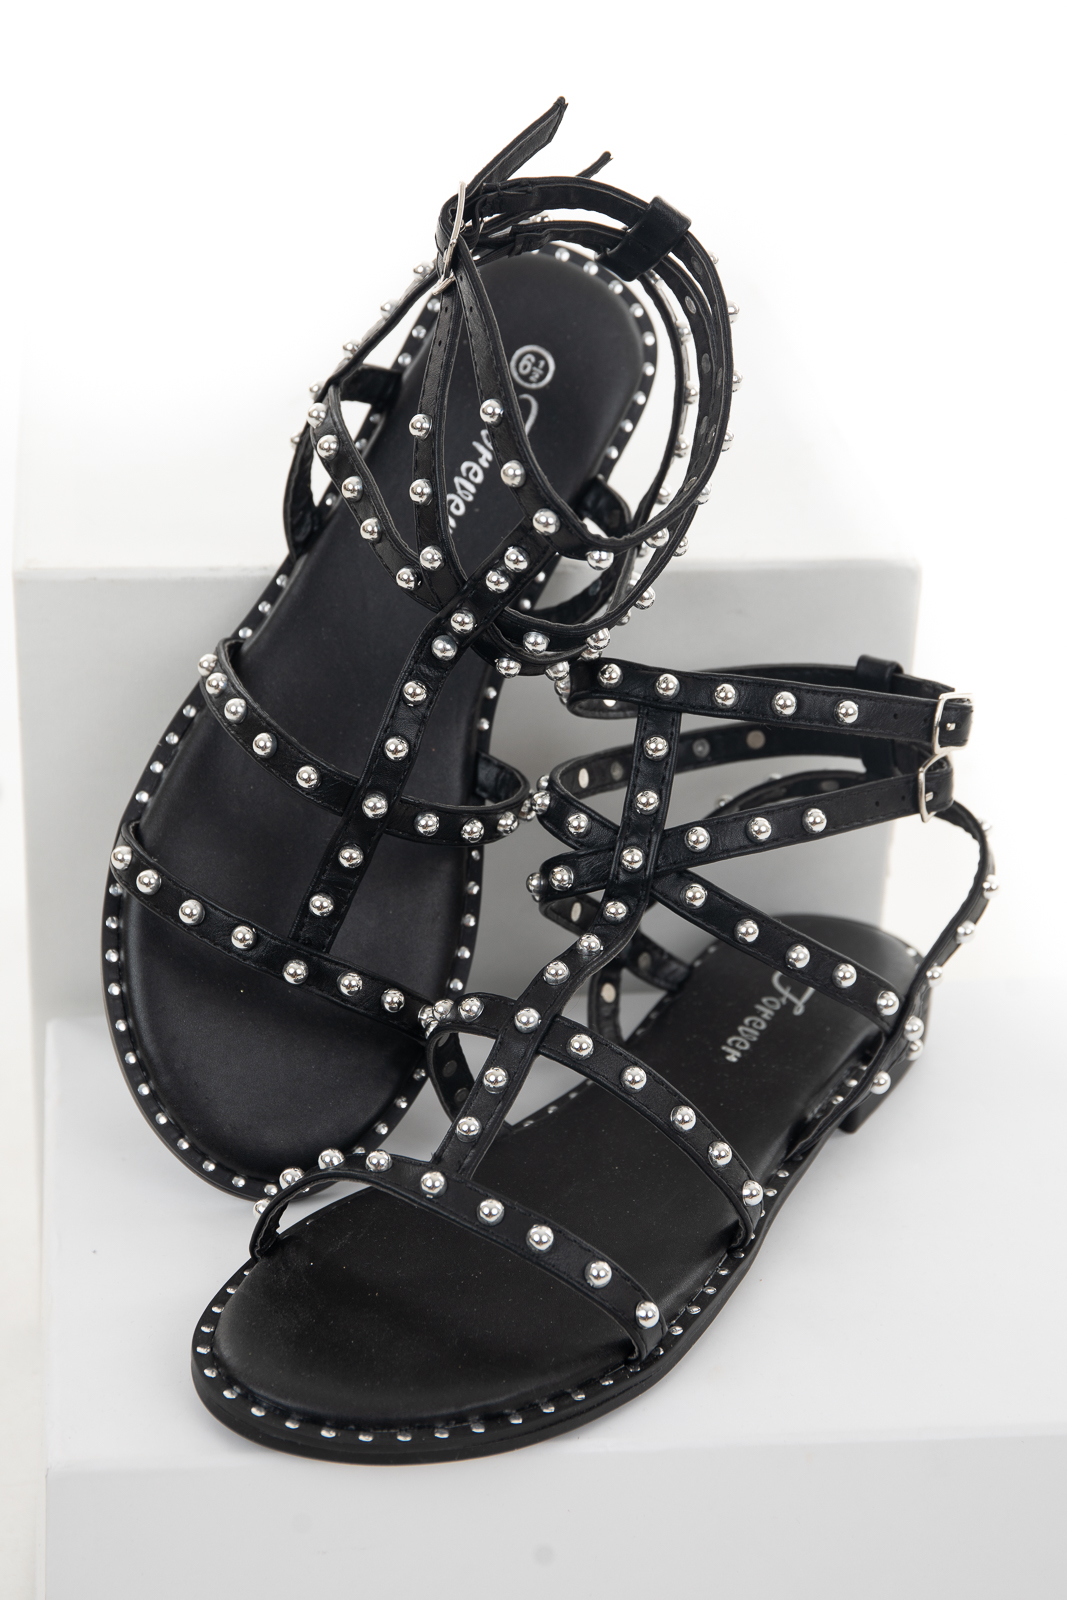 Black Ankle Strap Sandals with Silver Stud and Bead Details